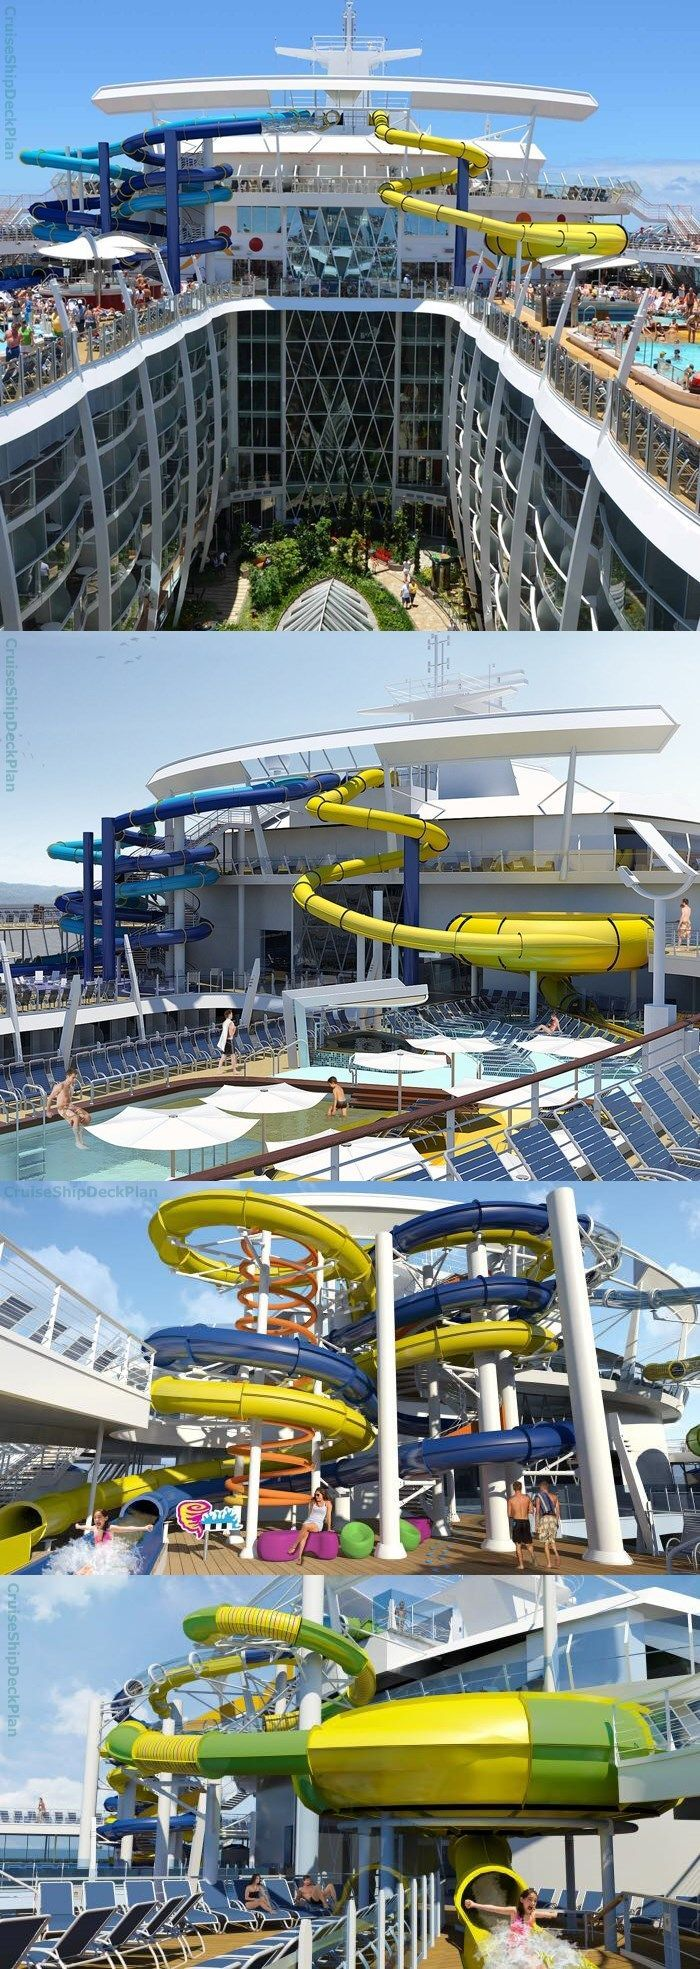 111 best royal caribbean cruise ships images on pinterest royal harmony of the seas take a look inside at the deck plans and other exciting baanklon Images